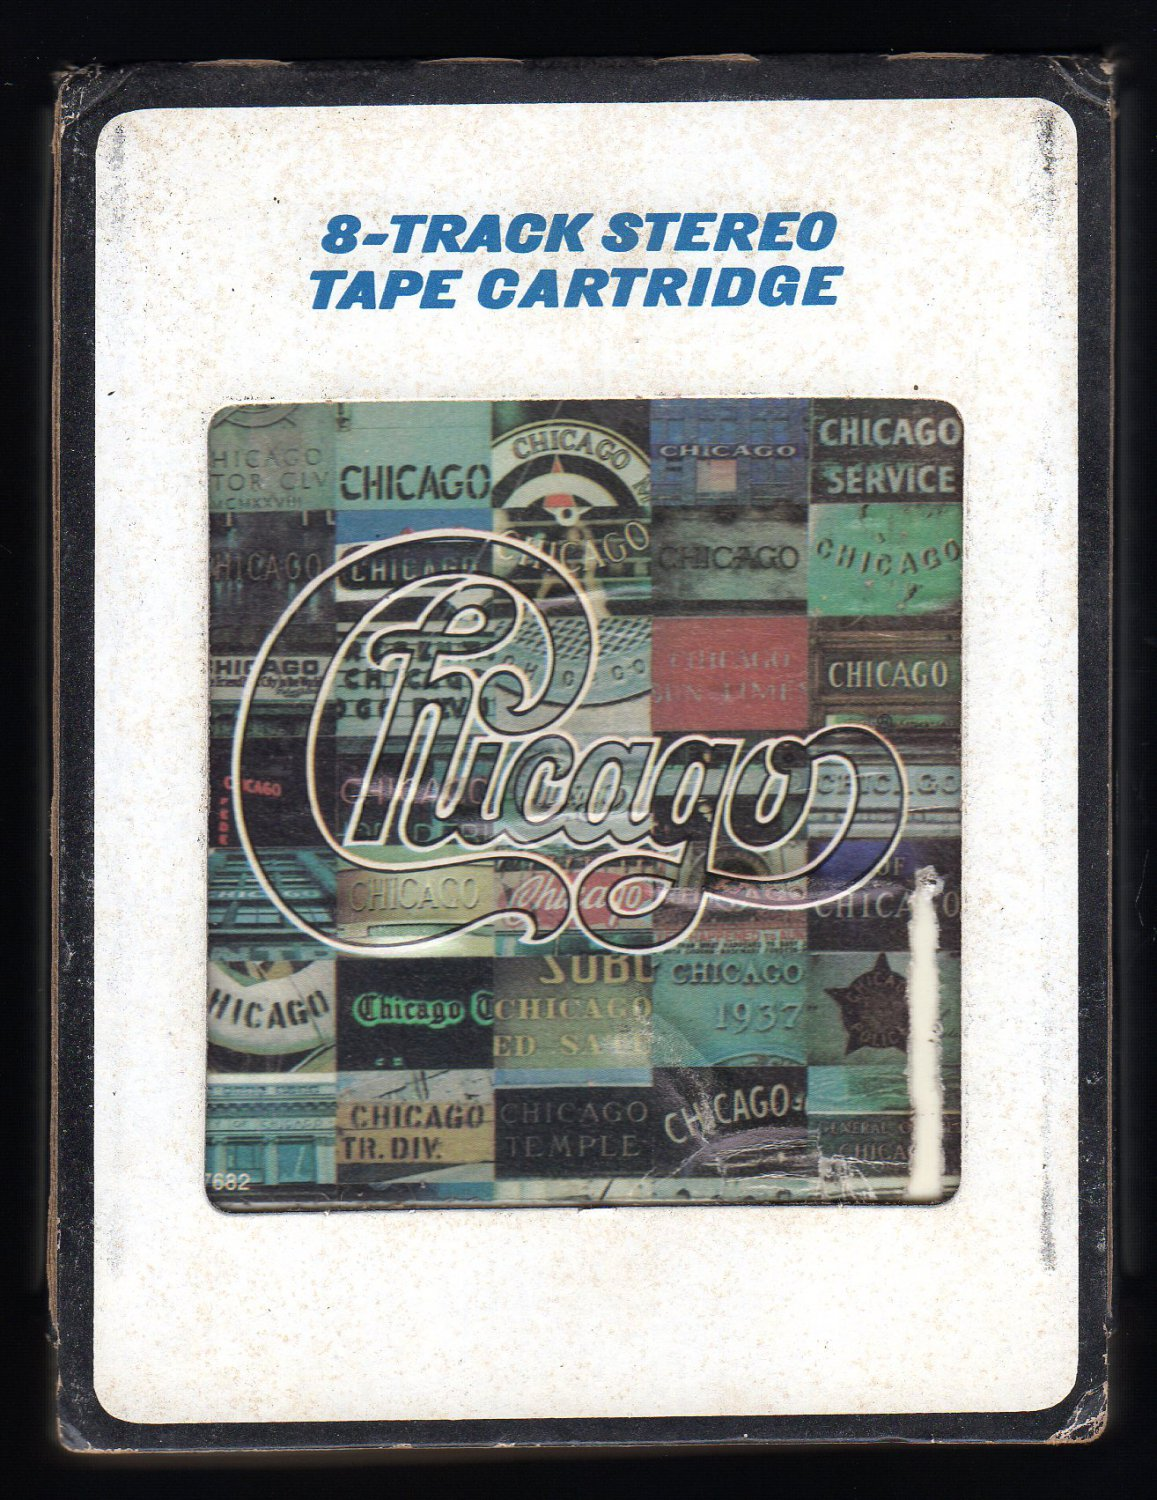 Chicago - Chicago Greatest Hits Vol II 1981 CRC CBS A32 8-TRACK TAPE